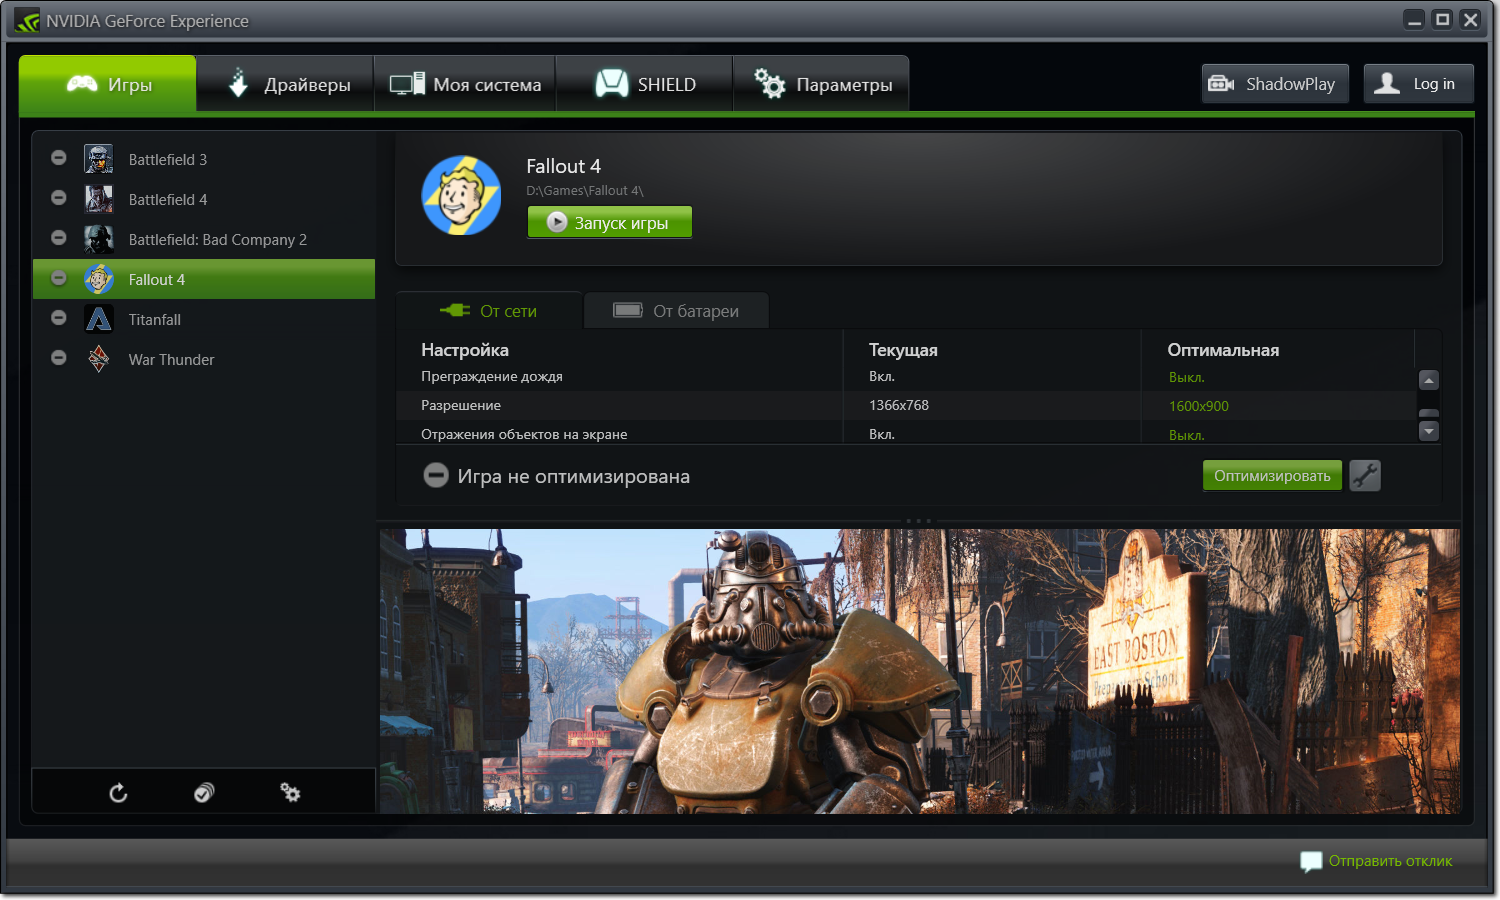 NVIDIA GeForce Graphics Driver 361.75